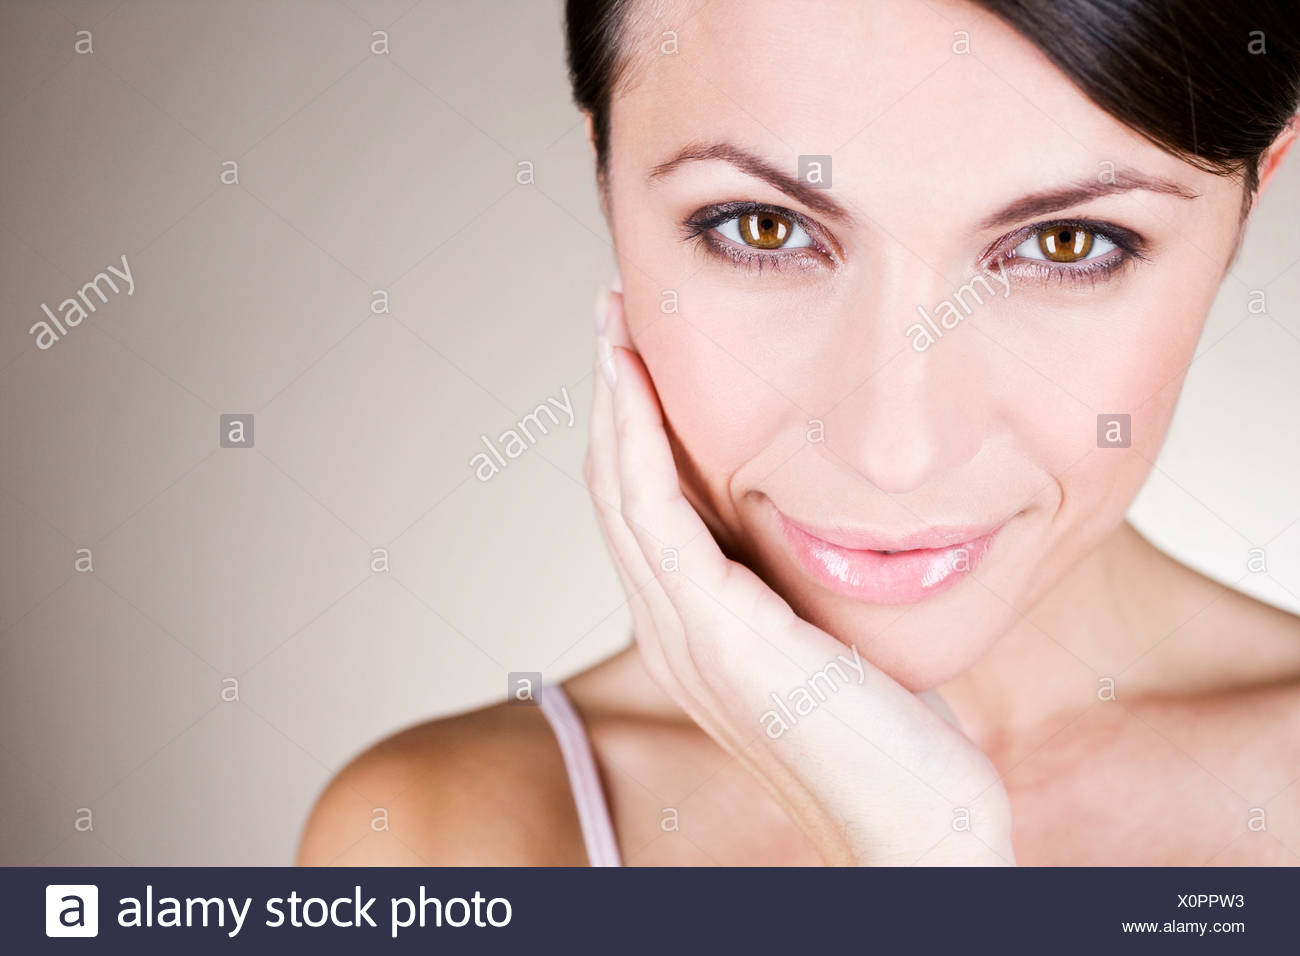 Portrait of a young woman touching her face Photo Stock